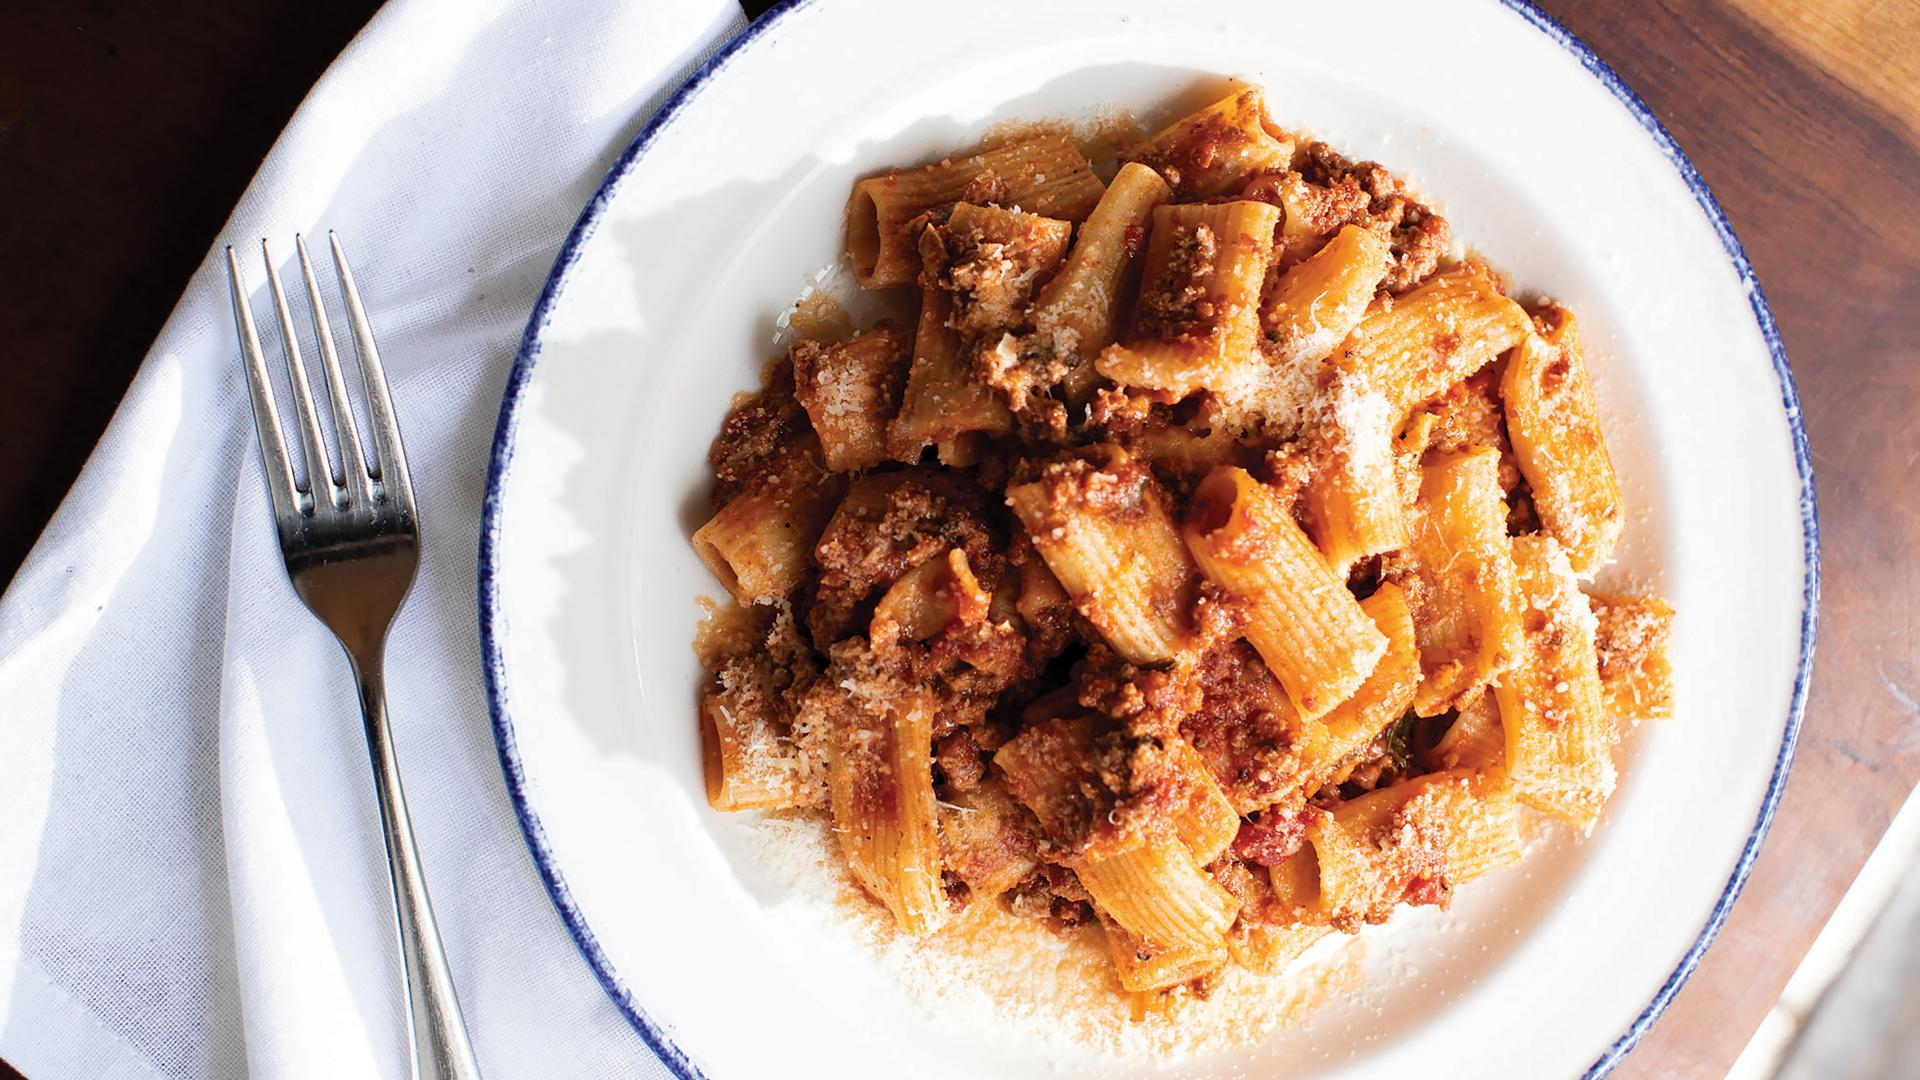 The best Italian restaurants in Toronto for pasta | Rigatoni bolognese at Trattoria Nervosa